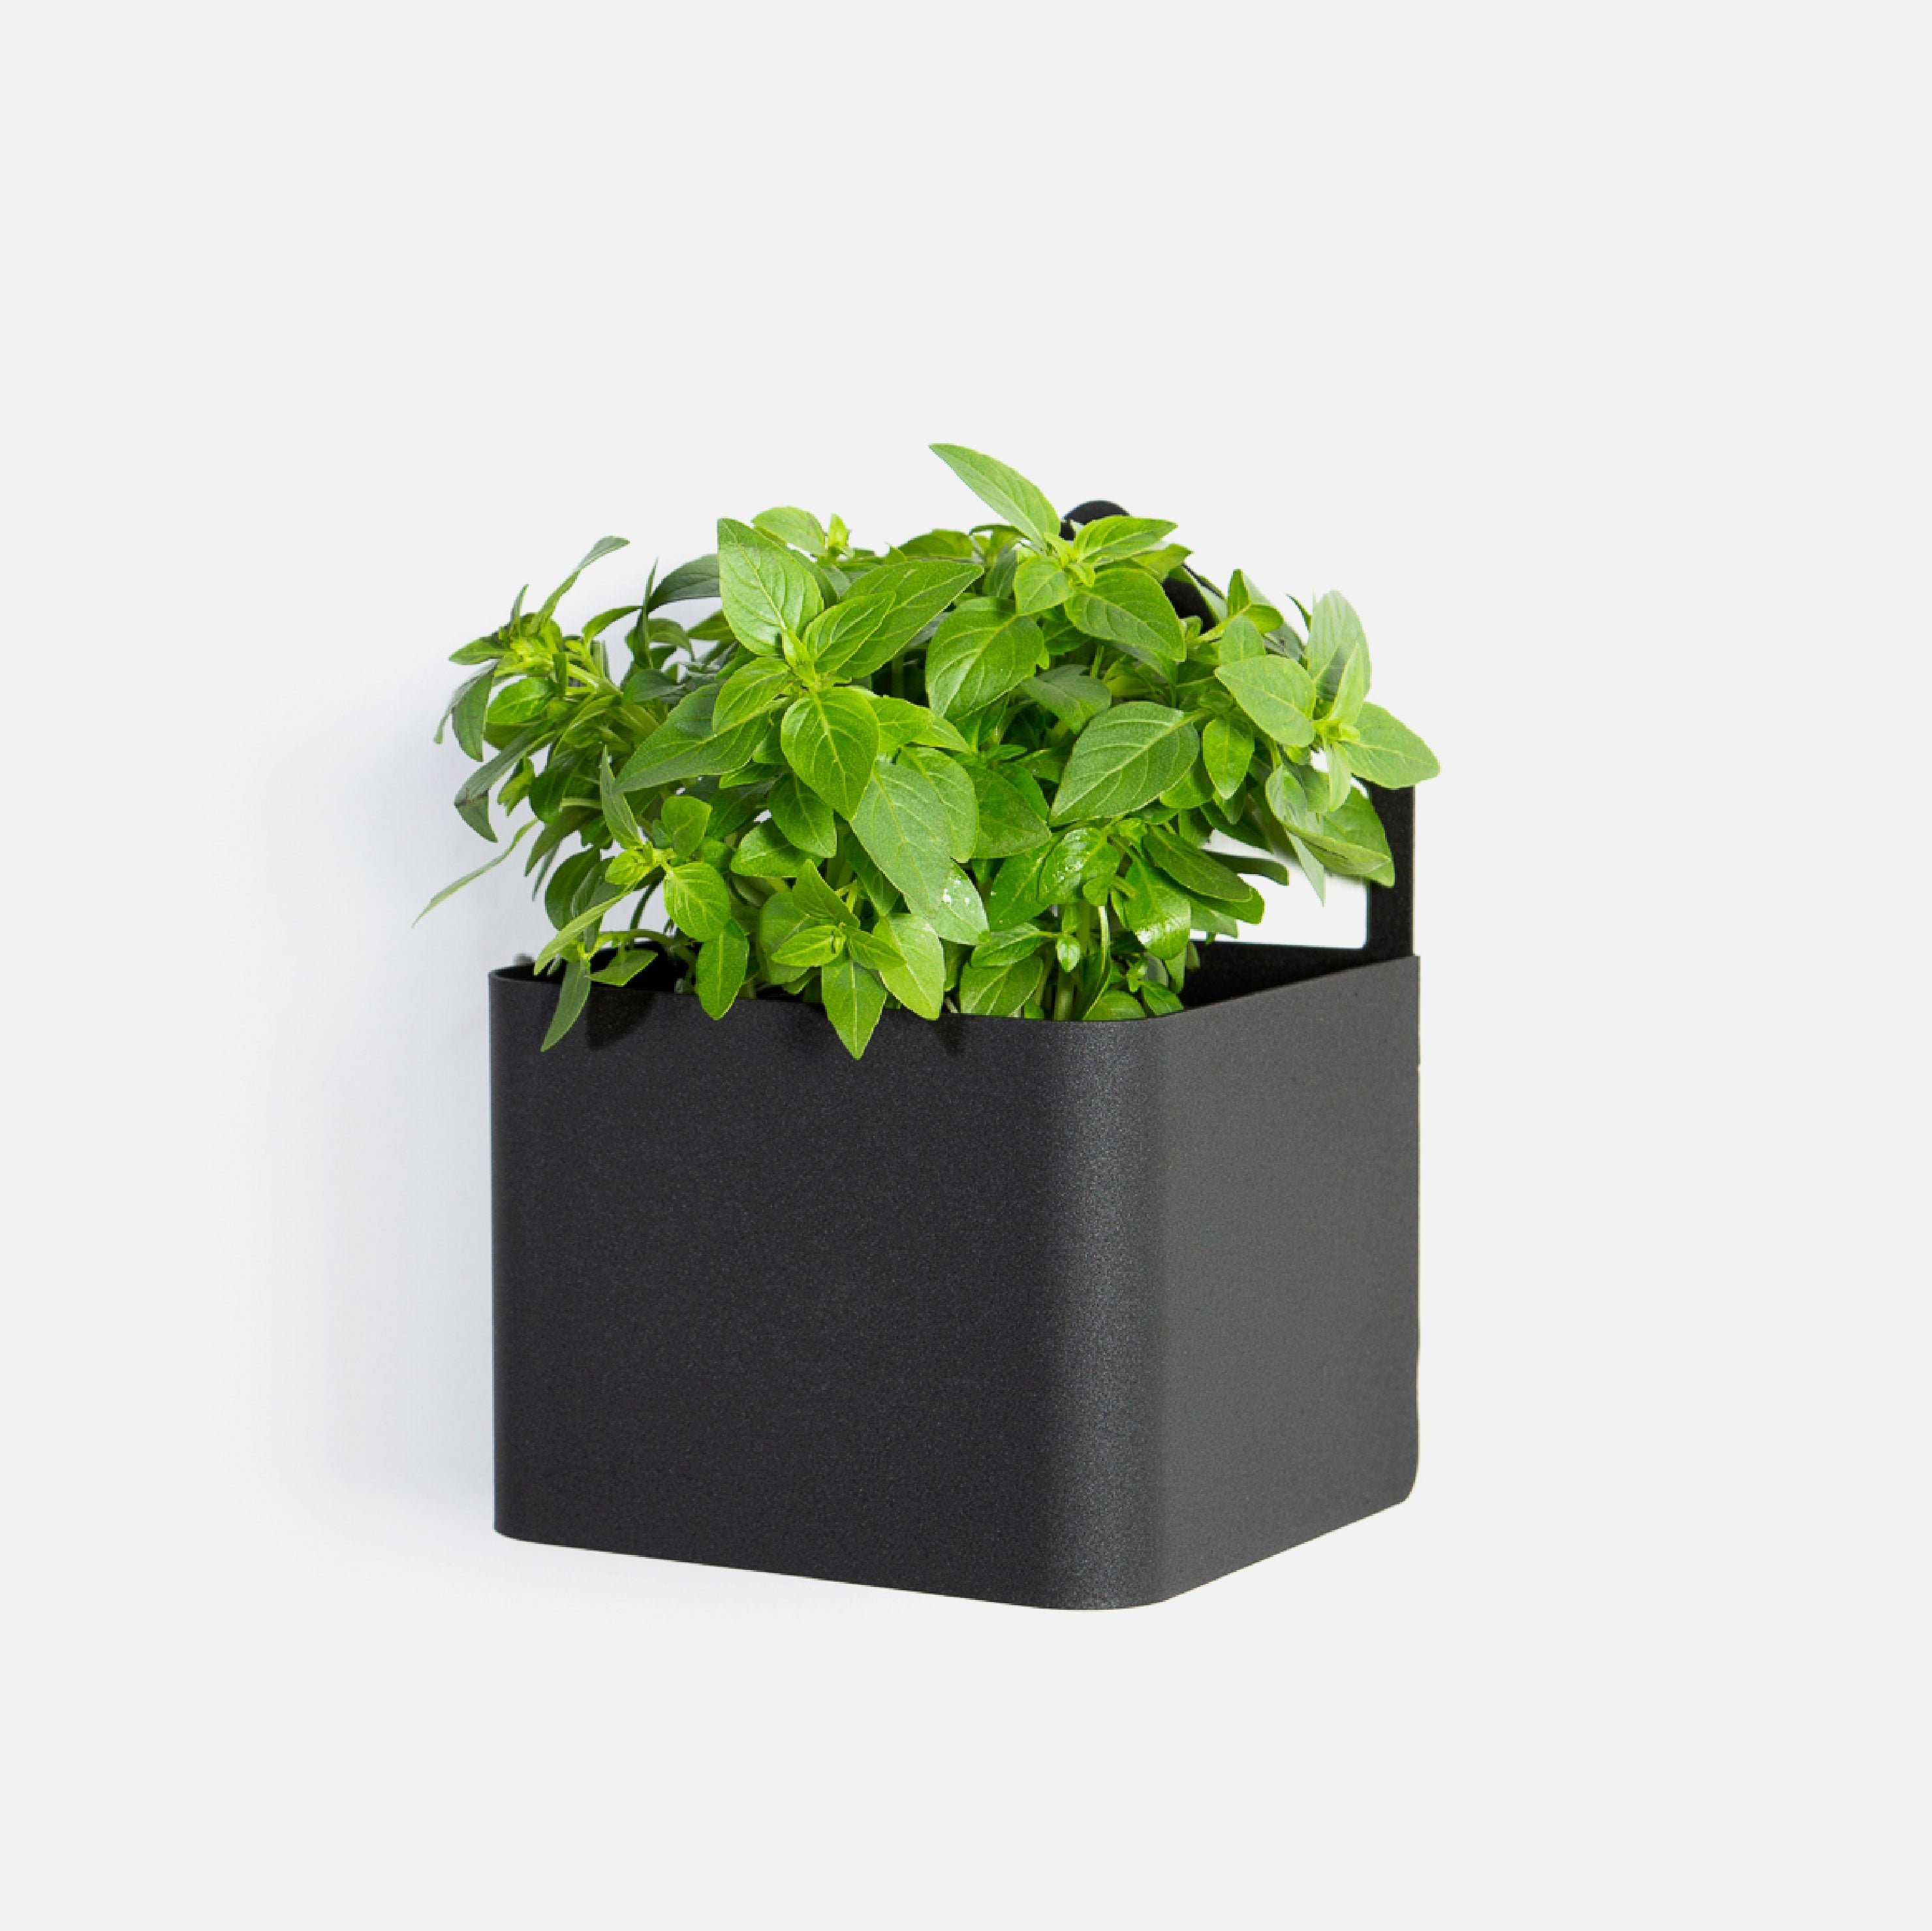 Sucasa Herb Box